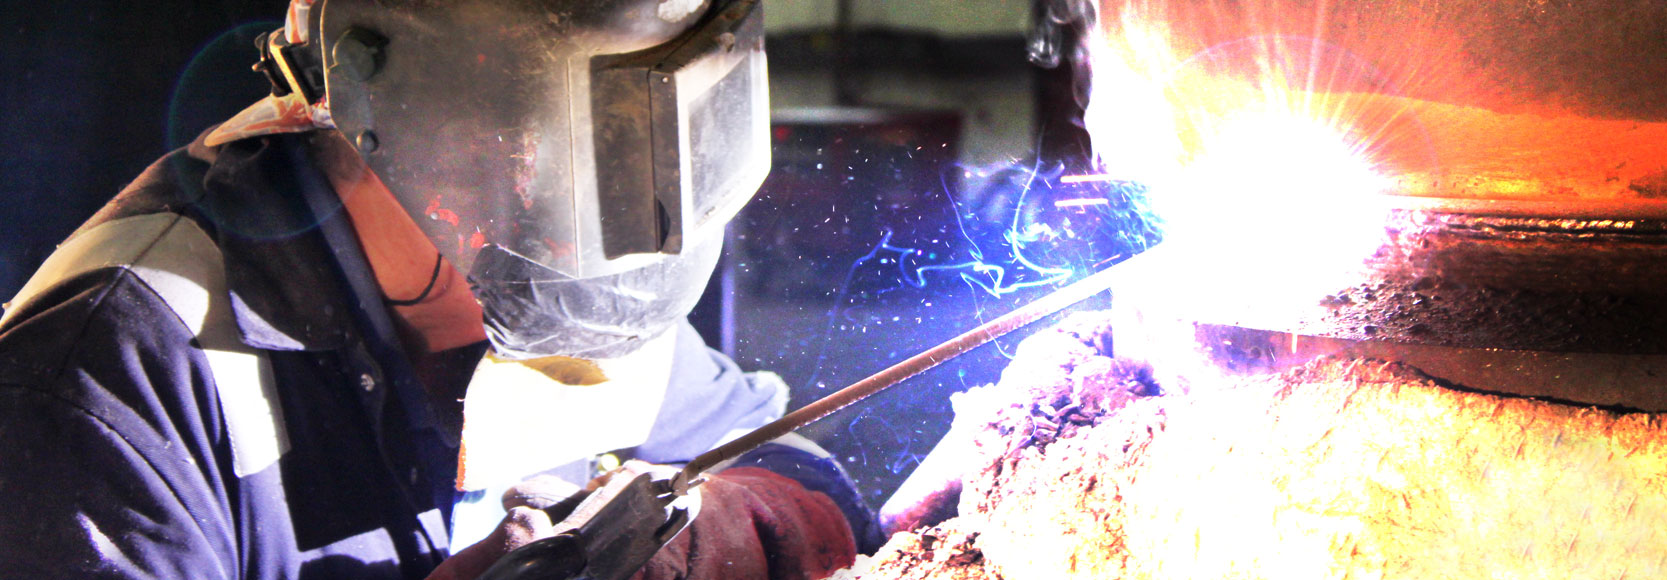 high_integrity_pipe_welding